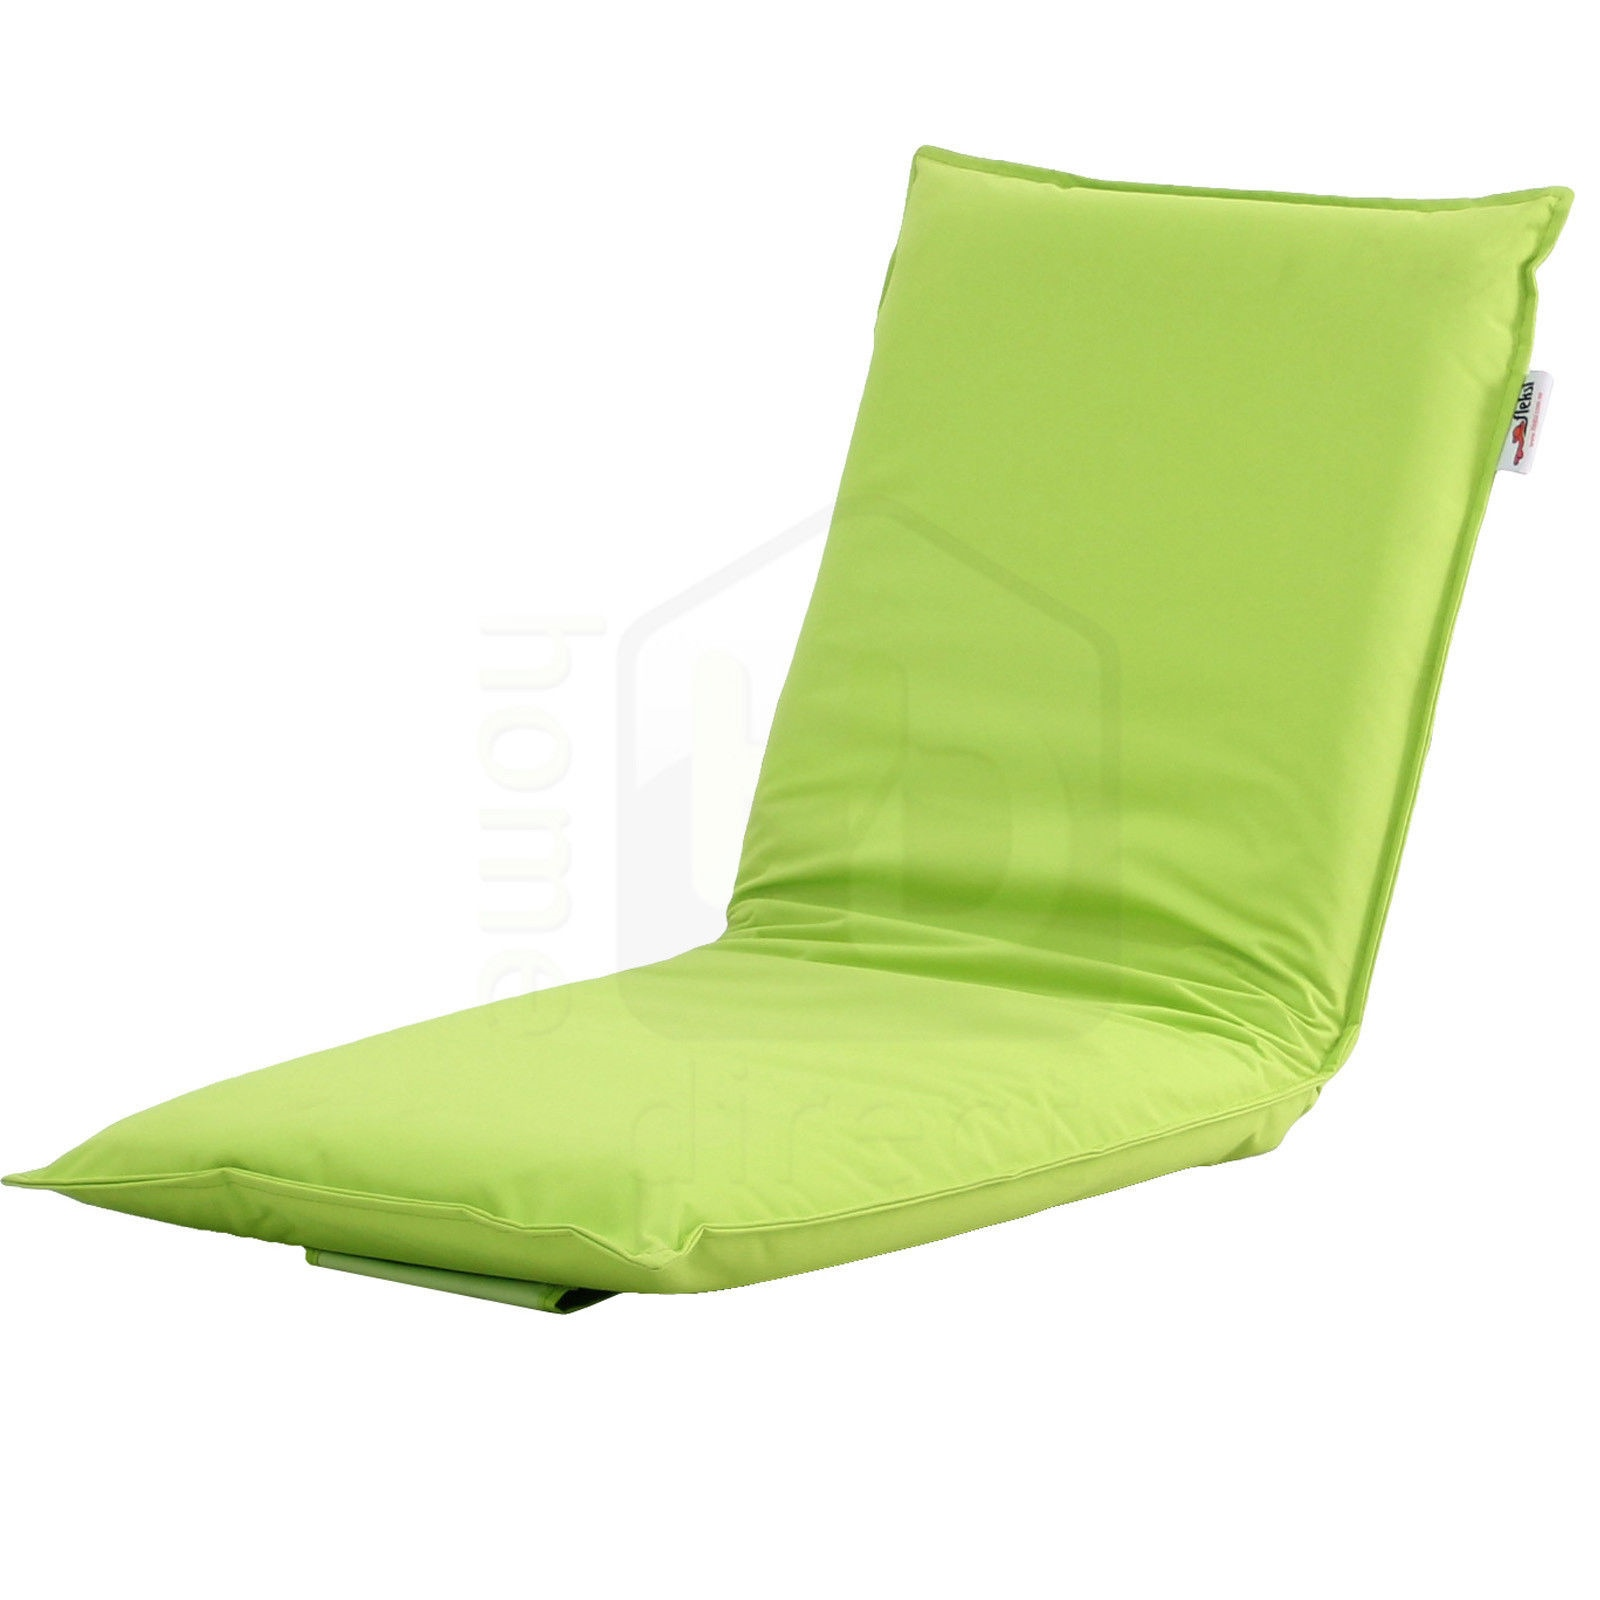 Folding outdoor lounge chair - Fleksi Foldable Outdoor Portable Sun Lounge Beach Pool Deck Chair Bed Fb80l Ebay